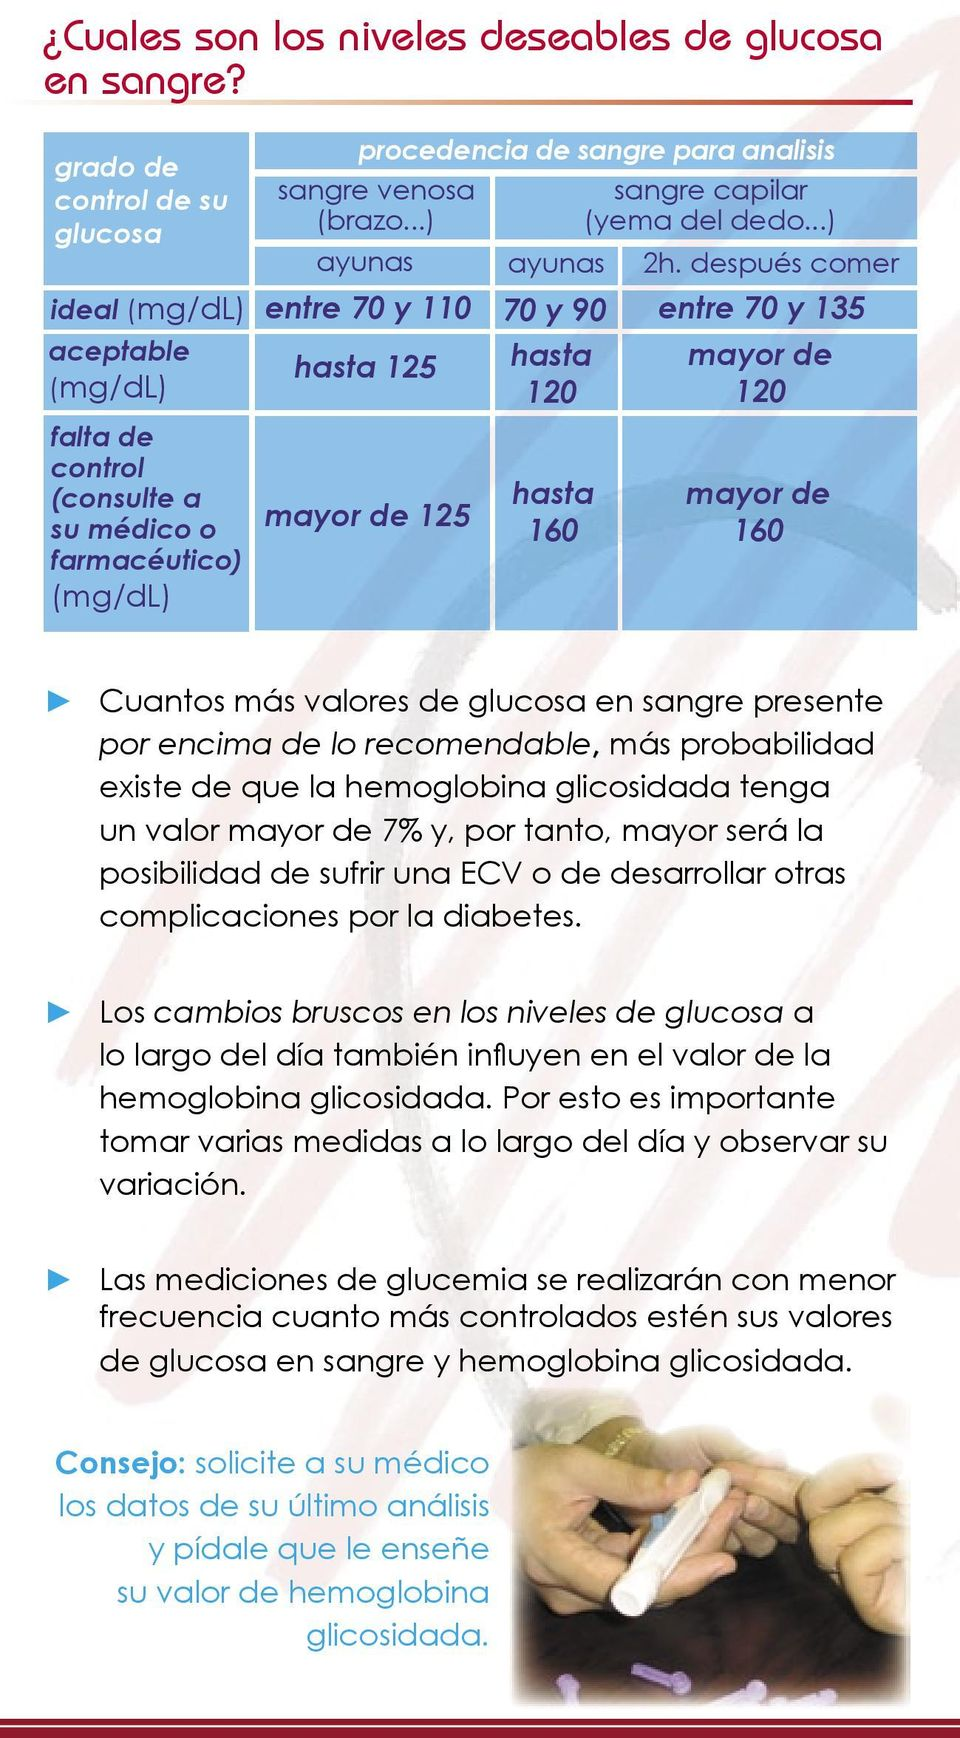 después comer ideal (mg/dl) entre 70 y 110 70 y 90 entre 70 y 135 falta de control (consulte a su médico o farmacéutico) (mg/dl) hasta 125 mayor de 125 hasta 120 hasta 160 mayor de 120 mayor de 160